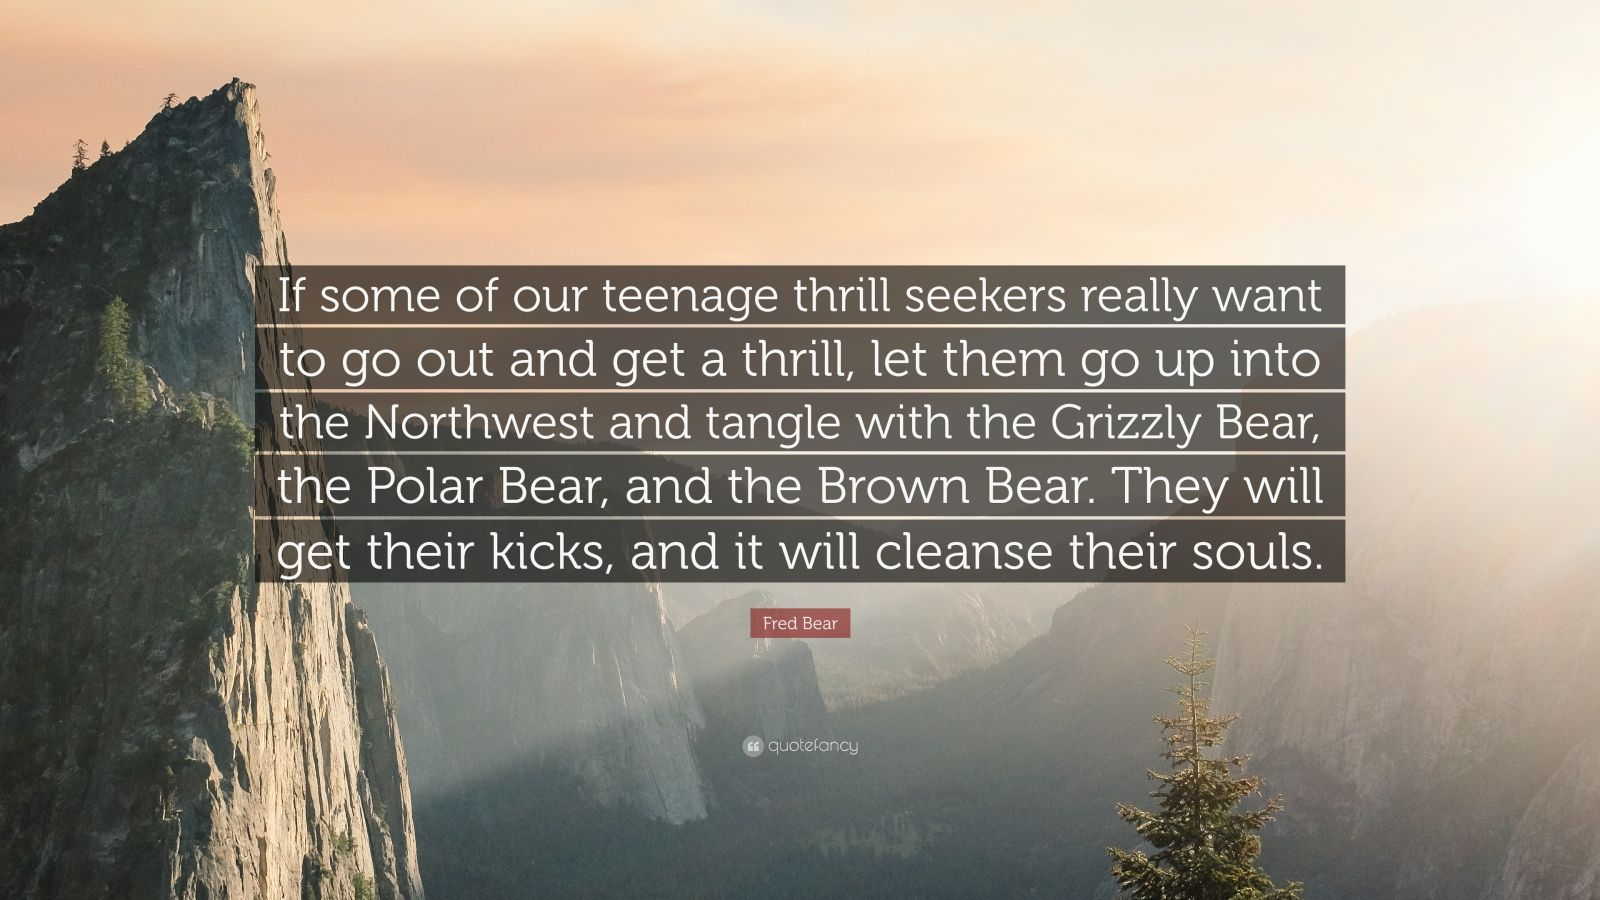 """Fred Bear Quote: """"If some of our teenage thrill seekers really want to go out and get a thrill, let them go up into the Northwest and tangle with the Grizzly Bear, the Polar Bear, and the Brown Bear. They will get their kicks, and it will cleanse their souls."""""""